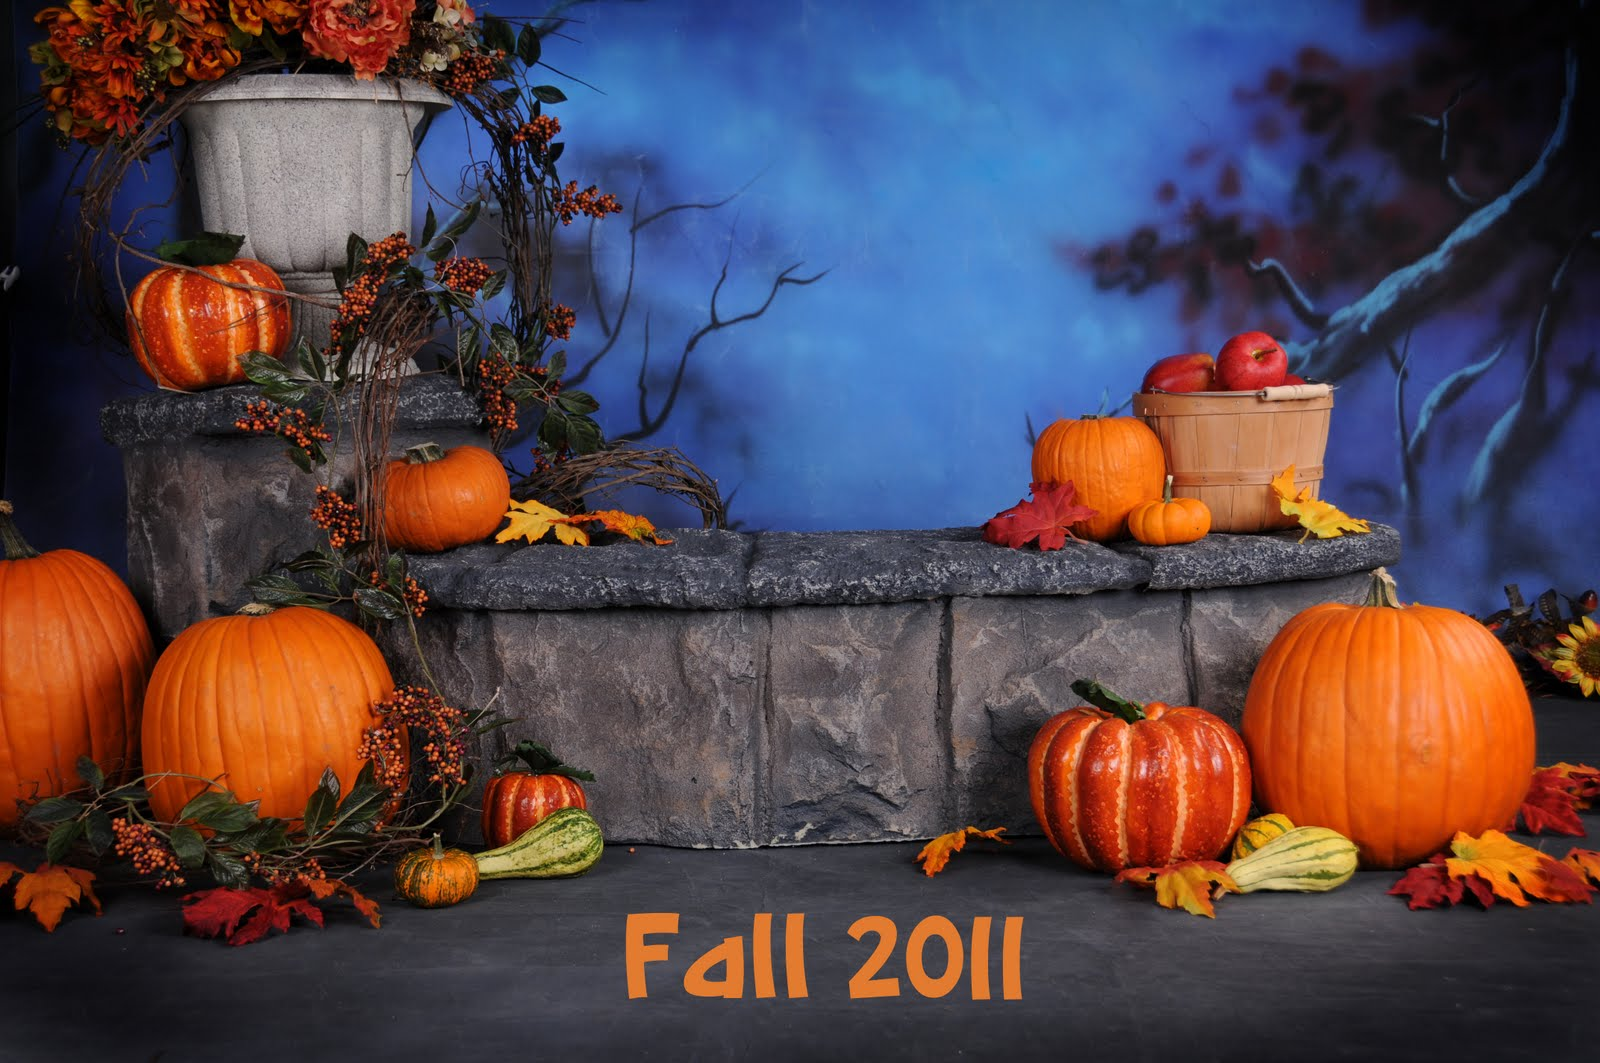 fall halloween 2011 now booking